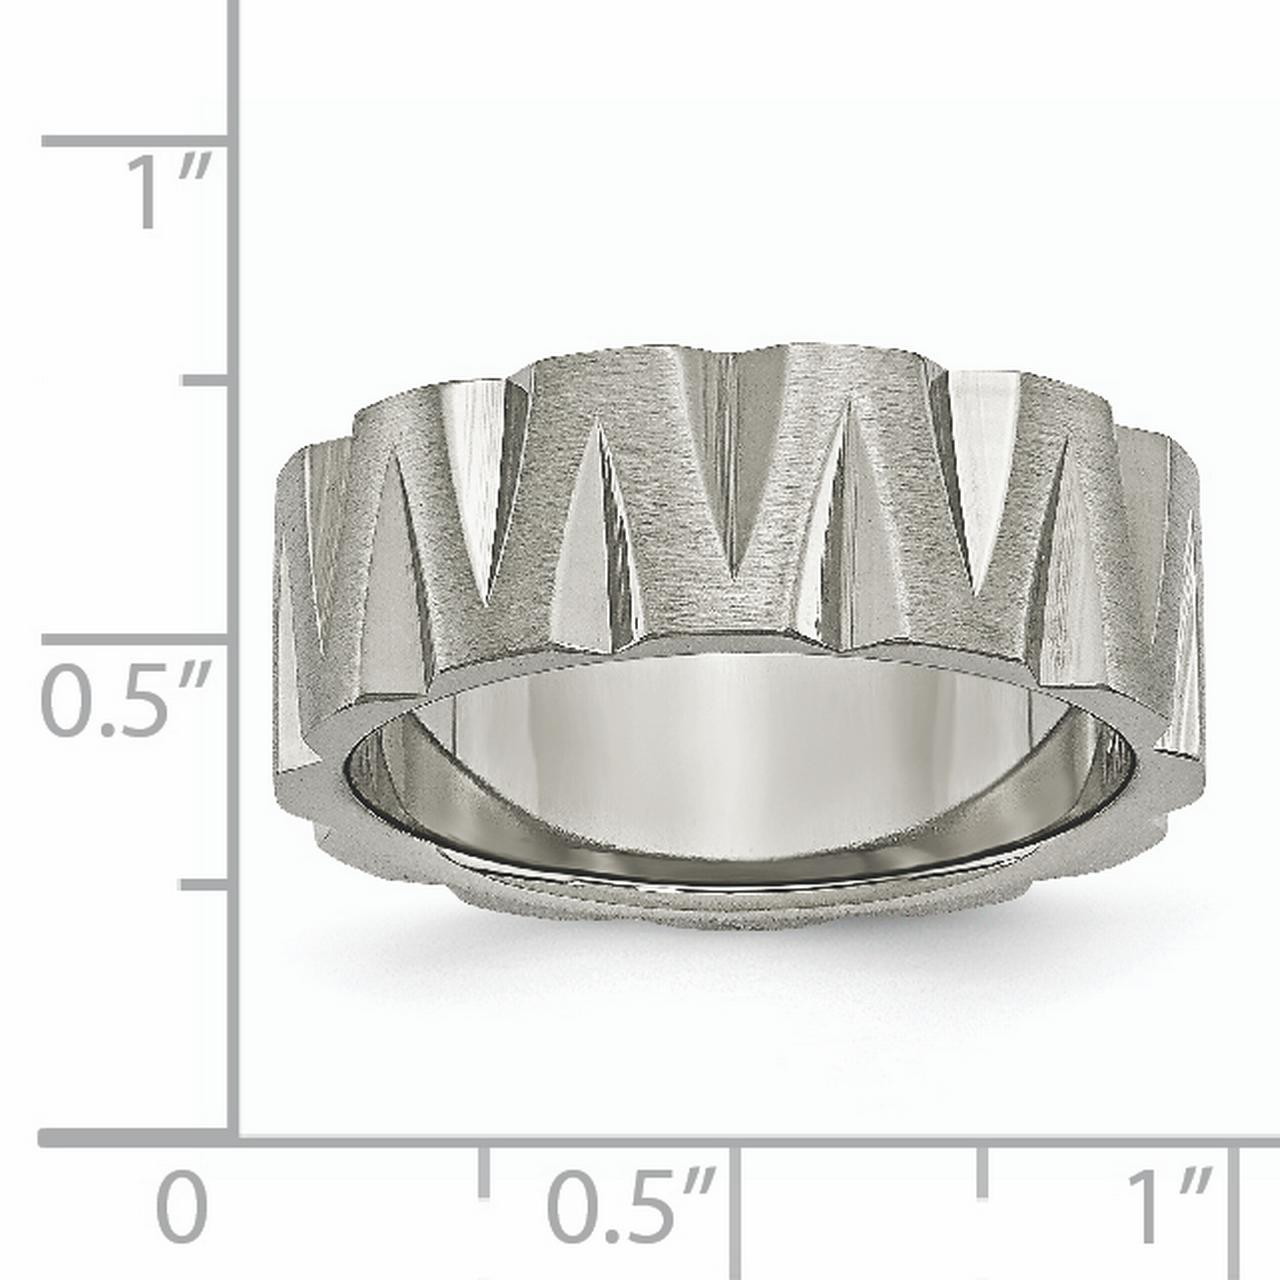 Titanium Notched 8mm Wedding Ring Band Size 7.00 Fancy Fashion Jewelry Gifts For Women For Her - image 1 de 6